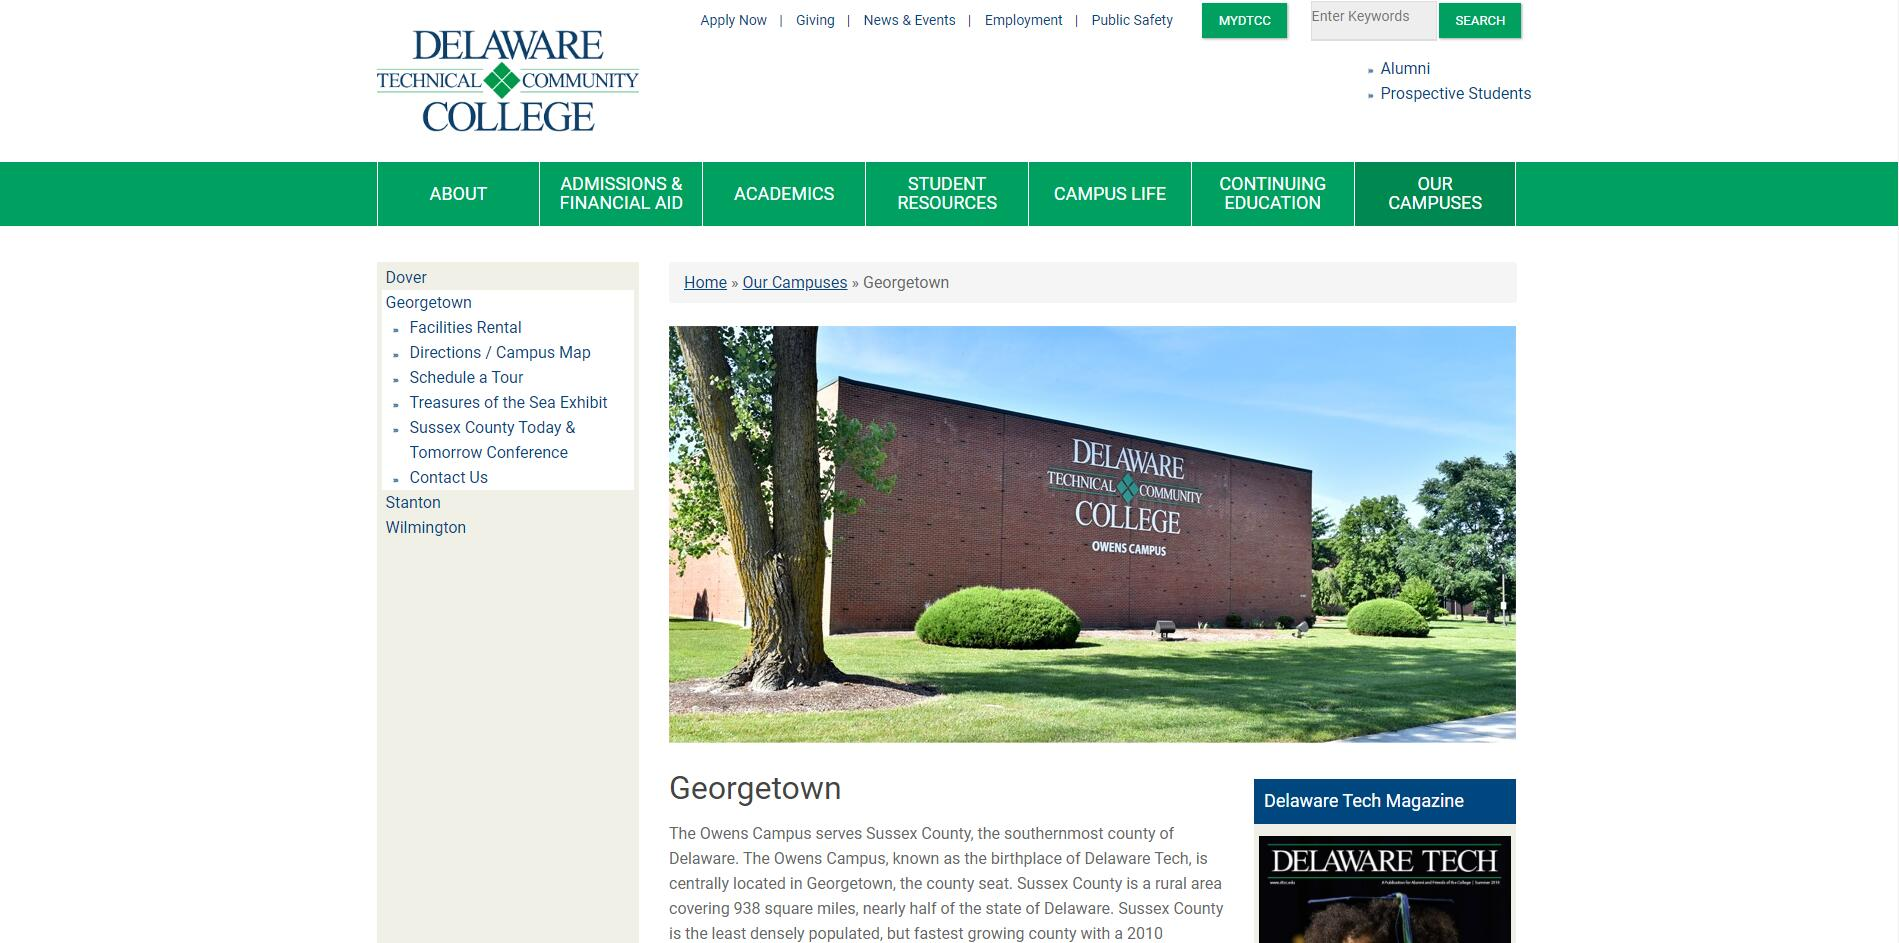 Delaware Technical and Community College-Owens